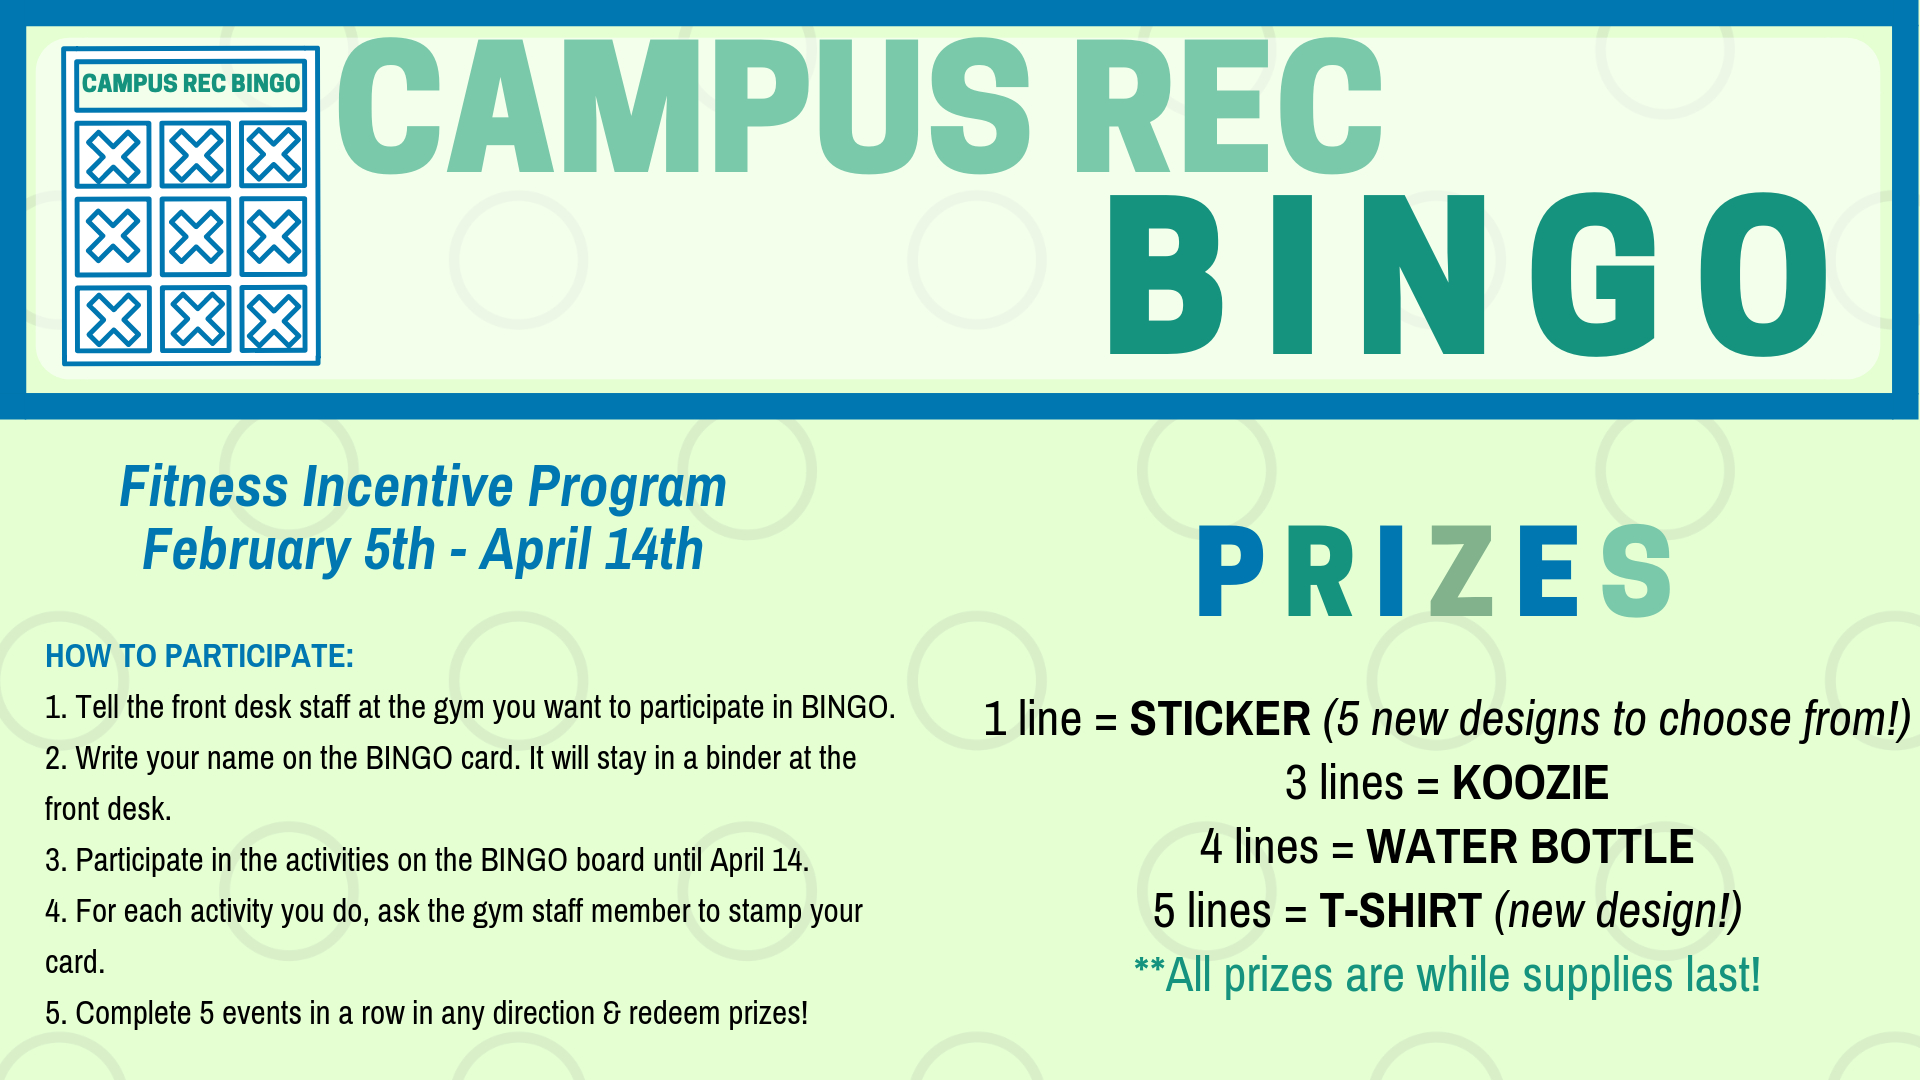 Information regarding Campus Rec BINGO is as follows Create Your Own Tag: is #GetFitAtUMW and Start date is January 14 2019 and End Date is April 13 2019 and Email is bhaas@umw.edu and Name is Brittanie Naff and File is Browse and Name of Ad/Event is Campus Rec BINGO and Group Name is Campus Recreation and Affiliation is Department and File Name is TV-BINGO-Spring-19_comp.jpg and Panel is Main and